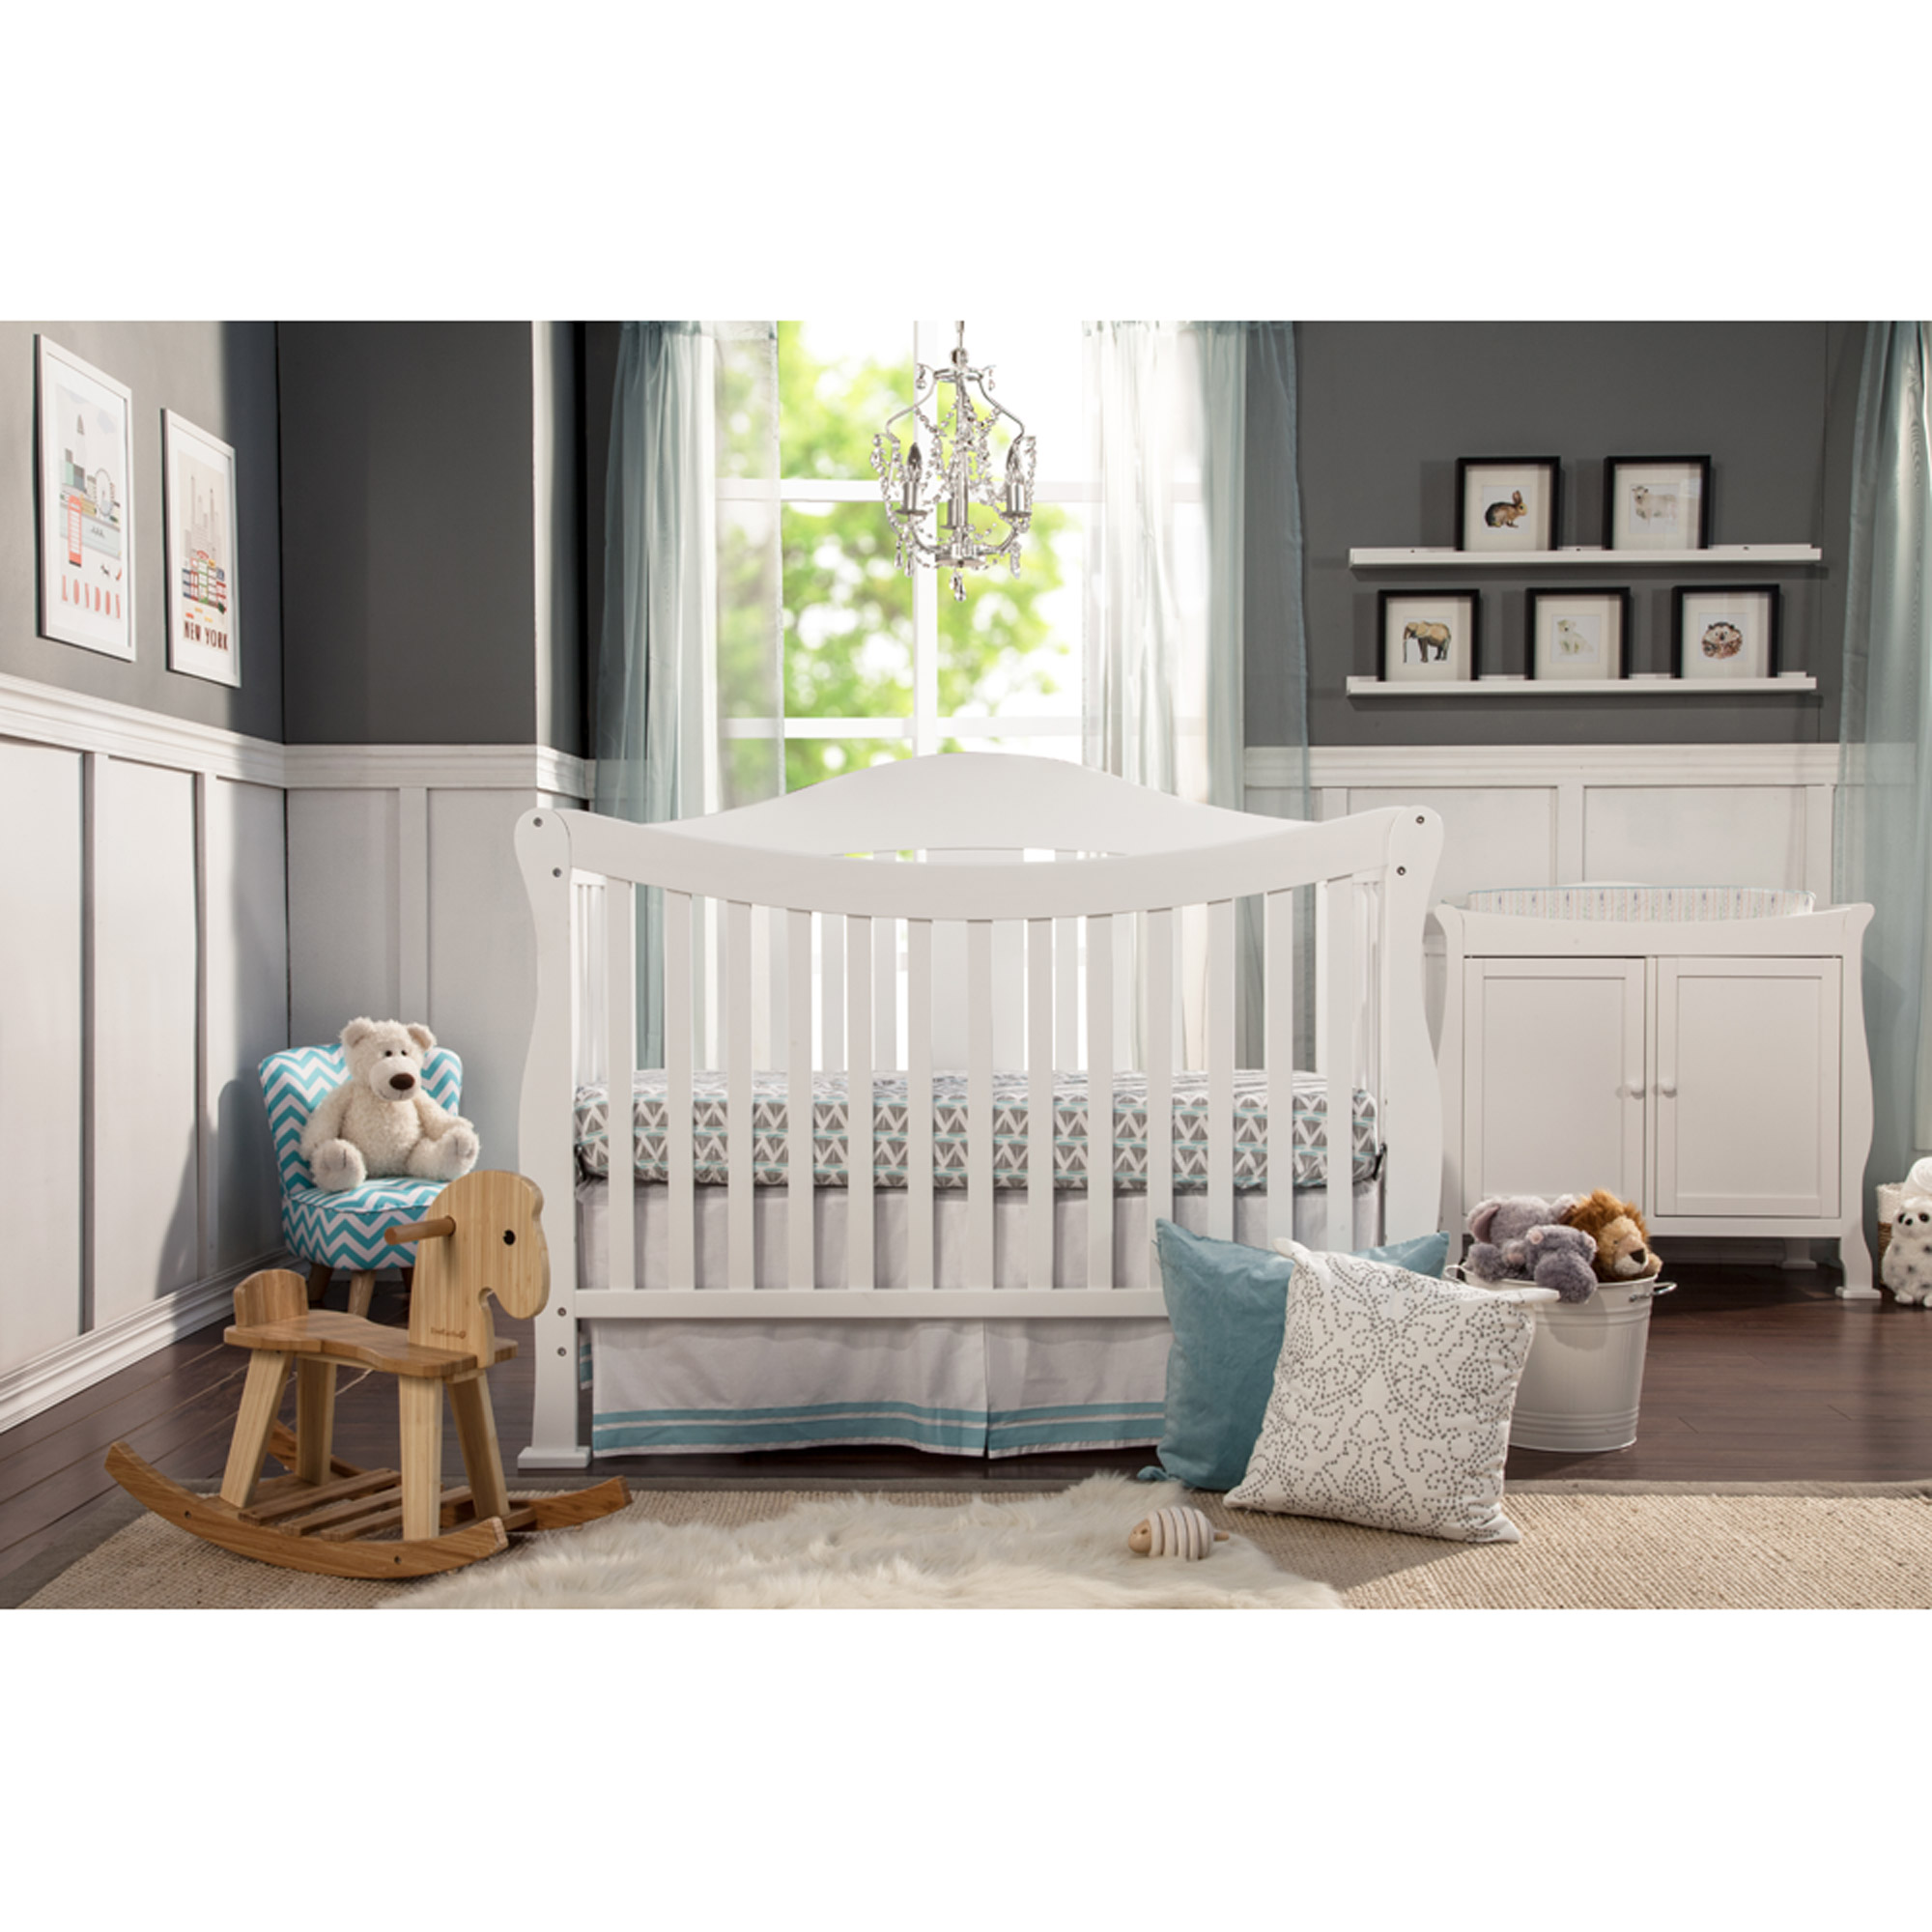 DaVinci Parker 4-in-1 Fixed-Side Convertible Crib with Toddler Rail, White